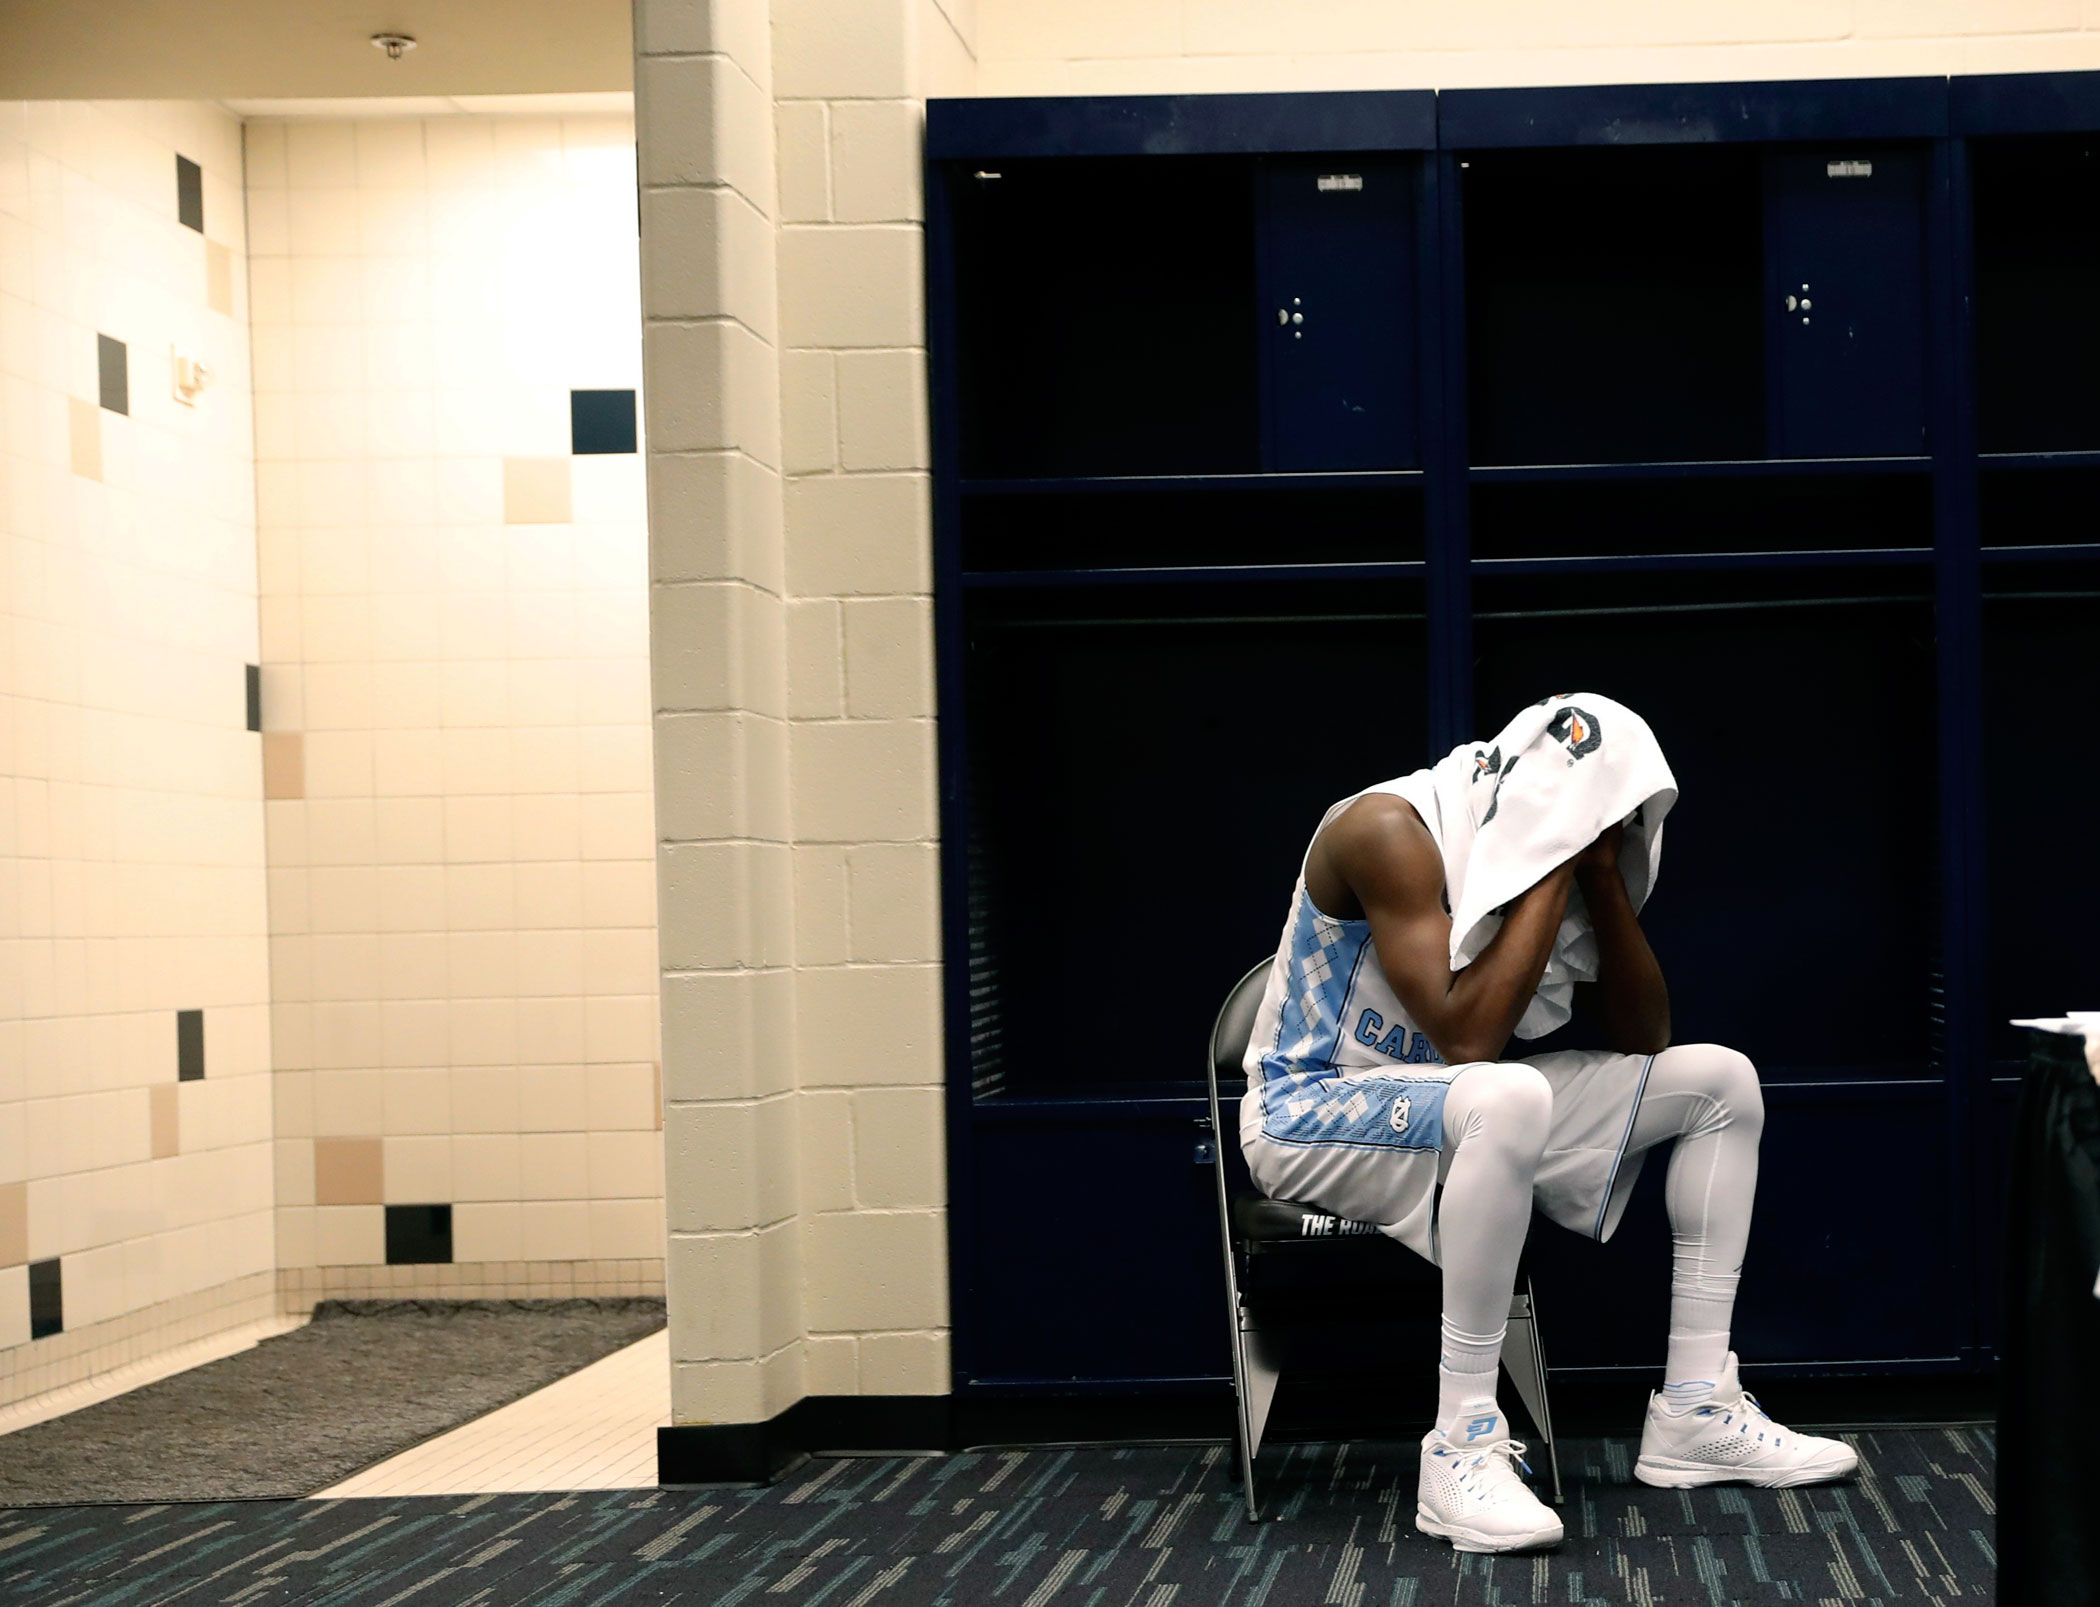 North Carolina's Theo Pinson sits in the locker room after Villanova defeated North Caroline in the NCAA college basketball National Championship game on April 4, 2016 in Houston.